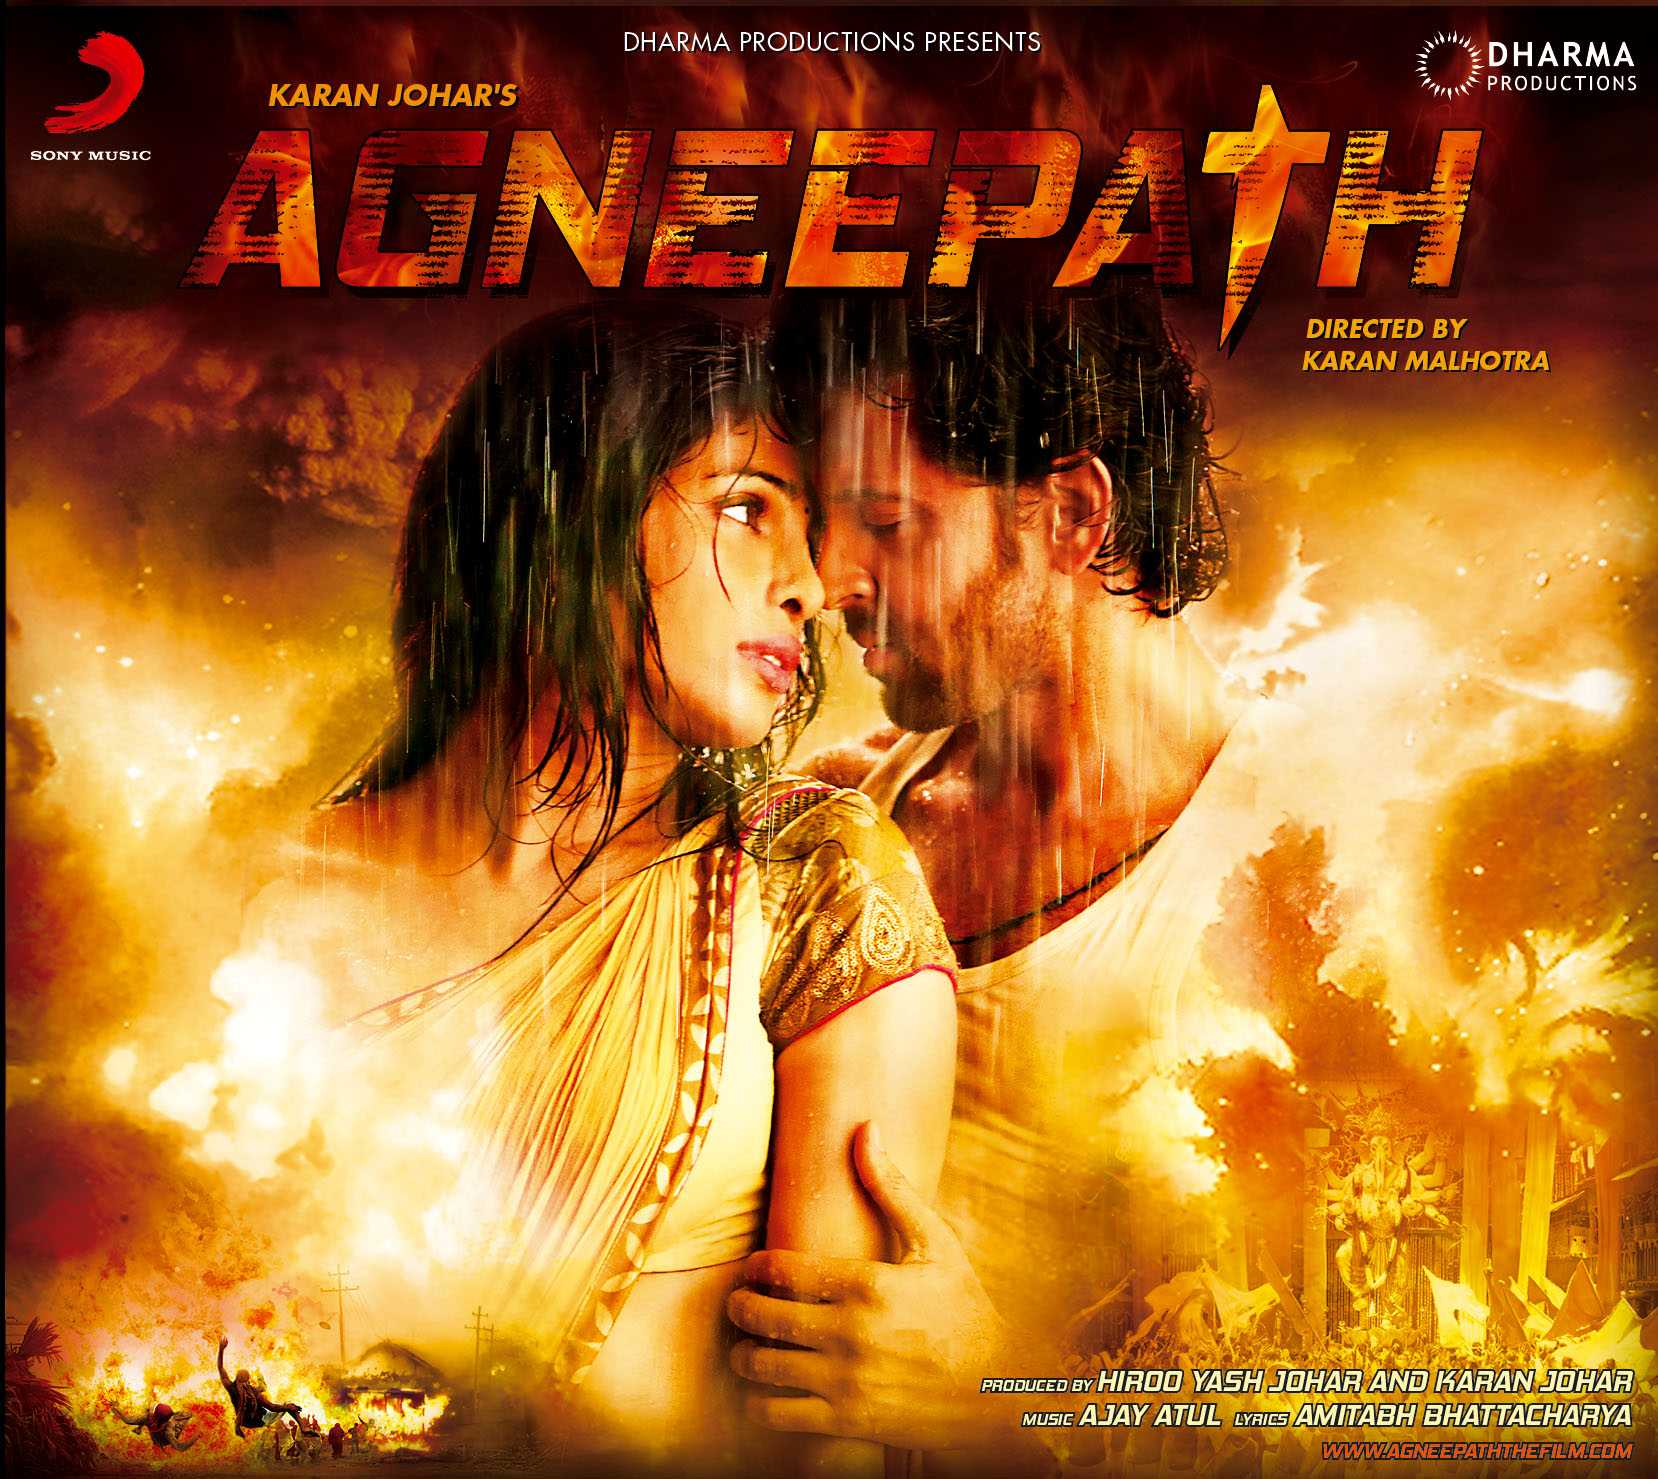 agneepath movie dialogues (famous quote) hrithik roshan and sanjay